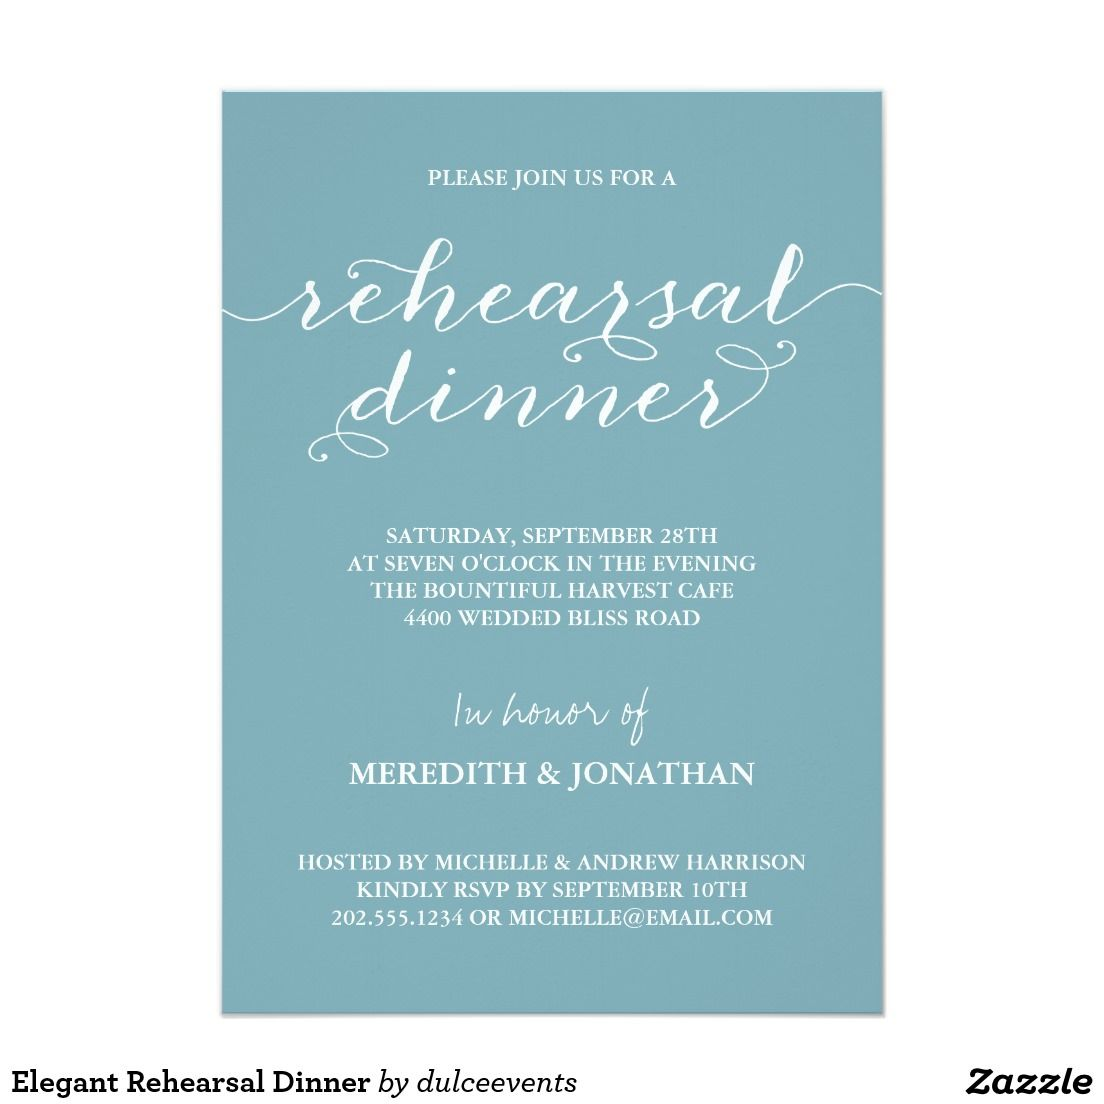 elegant rehearsal dinner wedding rehearsal dinner invitations